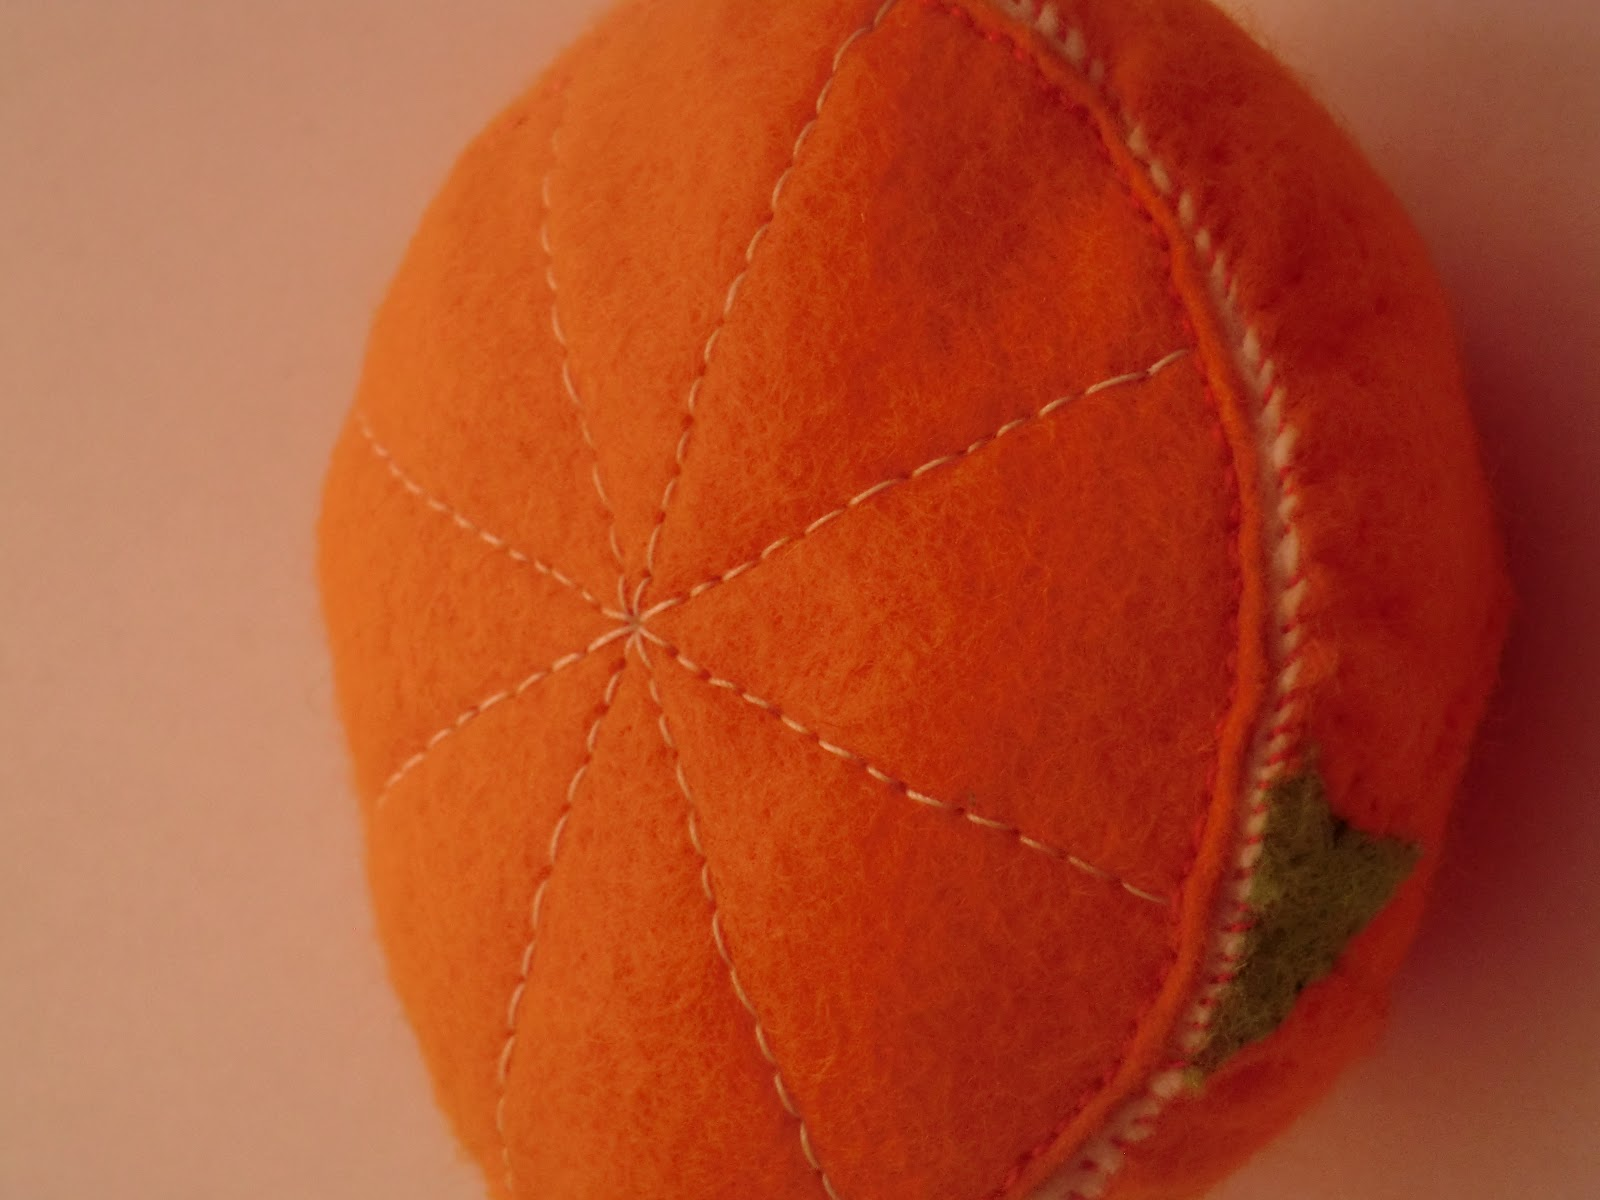 Jellied Fruit Slices Quot Mandarin Orange Quot Images Frompo